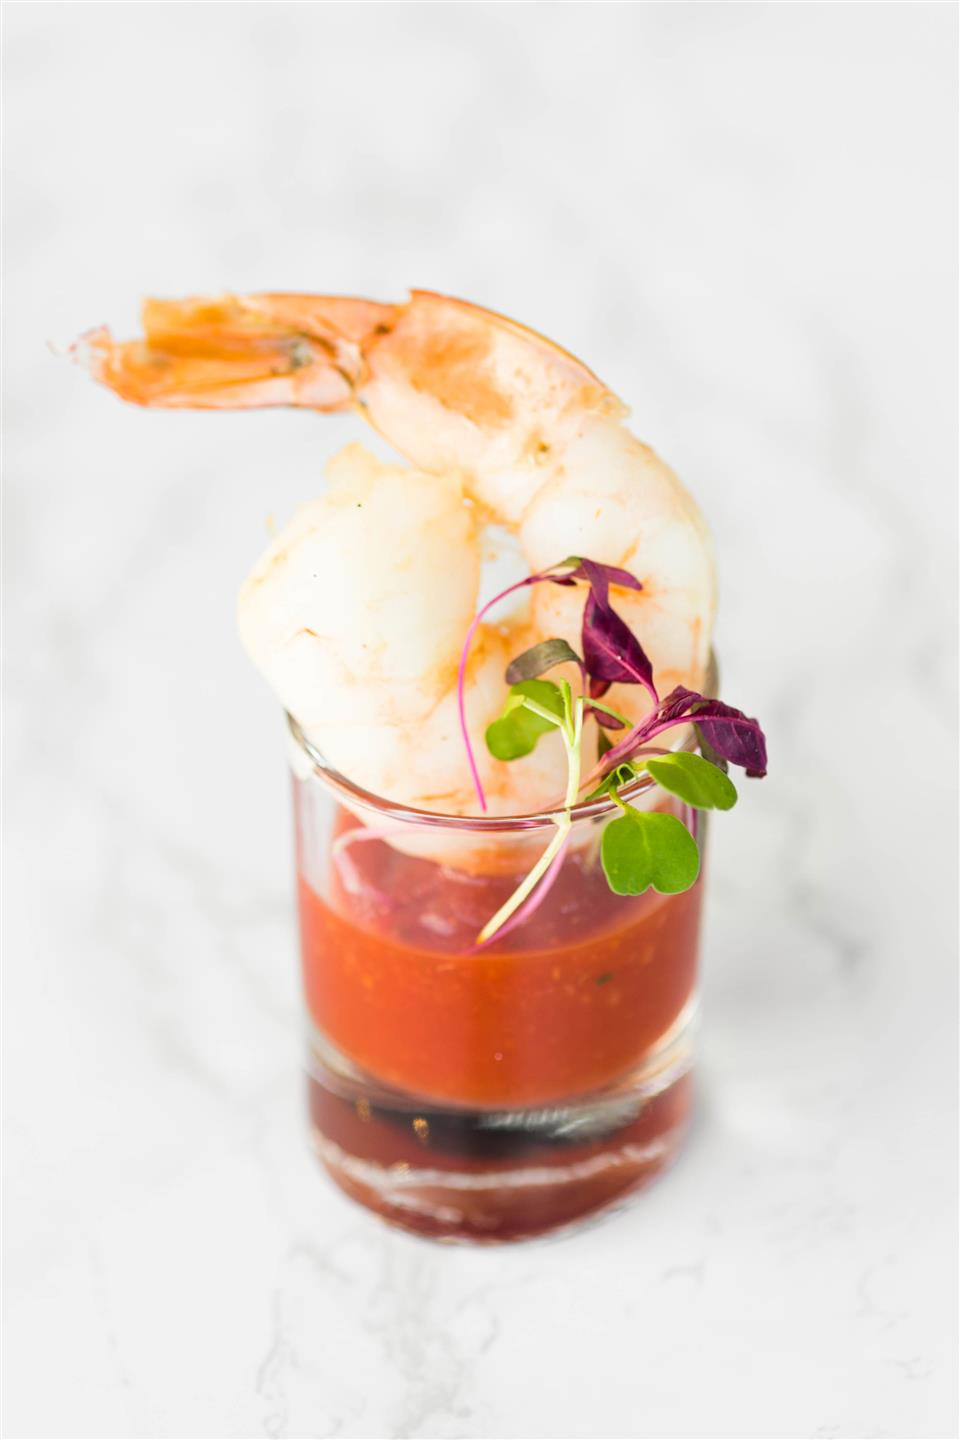 shrimp in a small glass